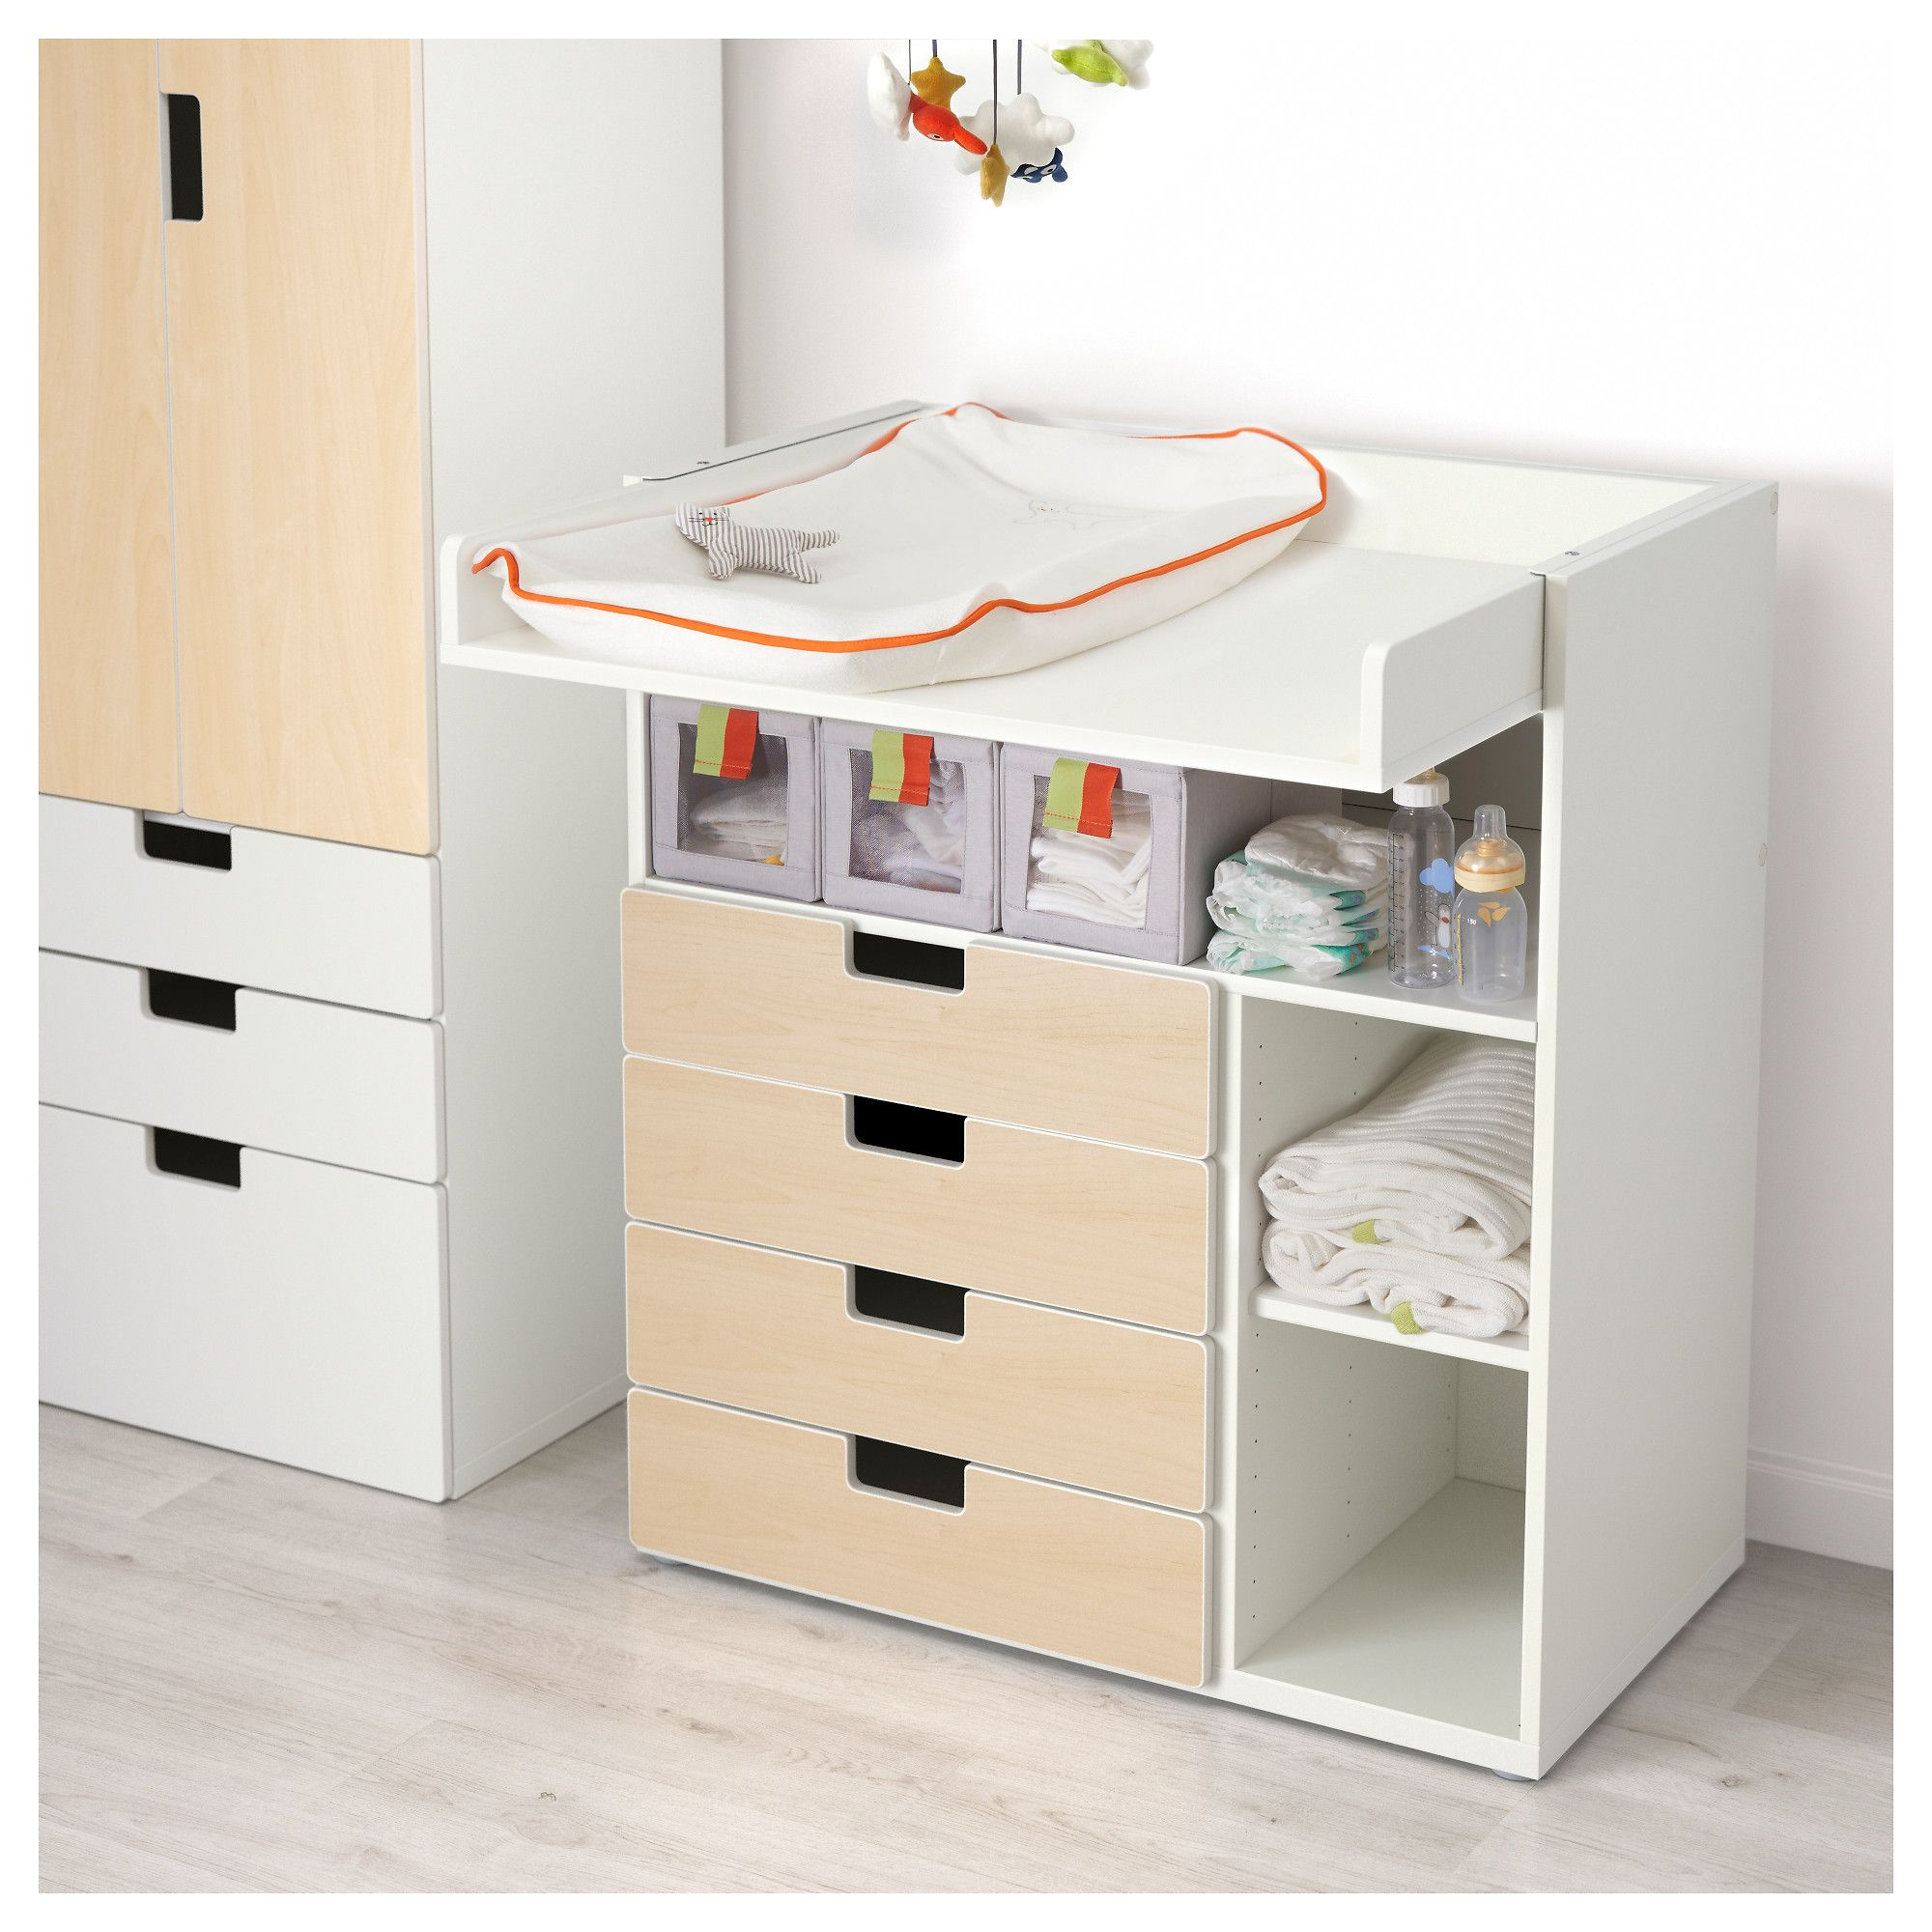 STUVA Changing table with 4 drawers White/birch effect IKEA | Pinterest